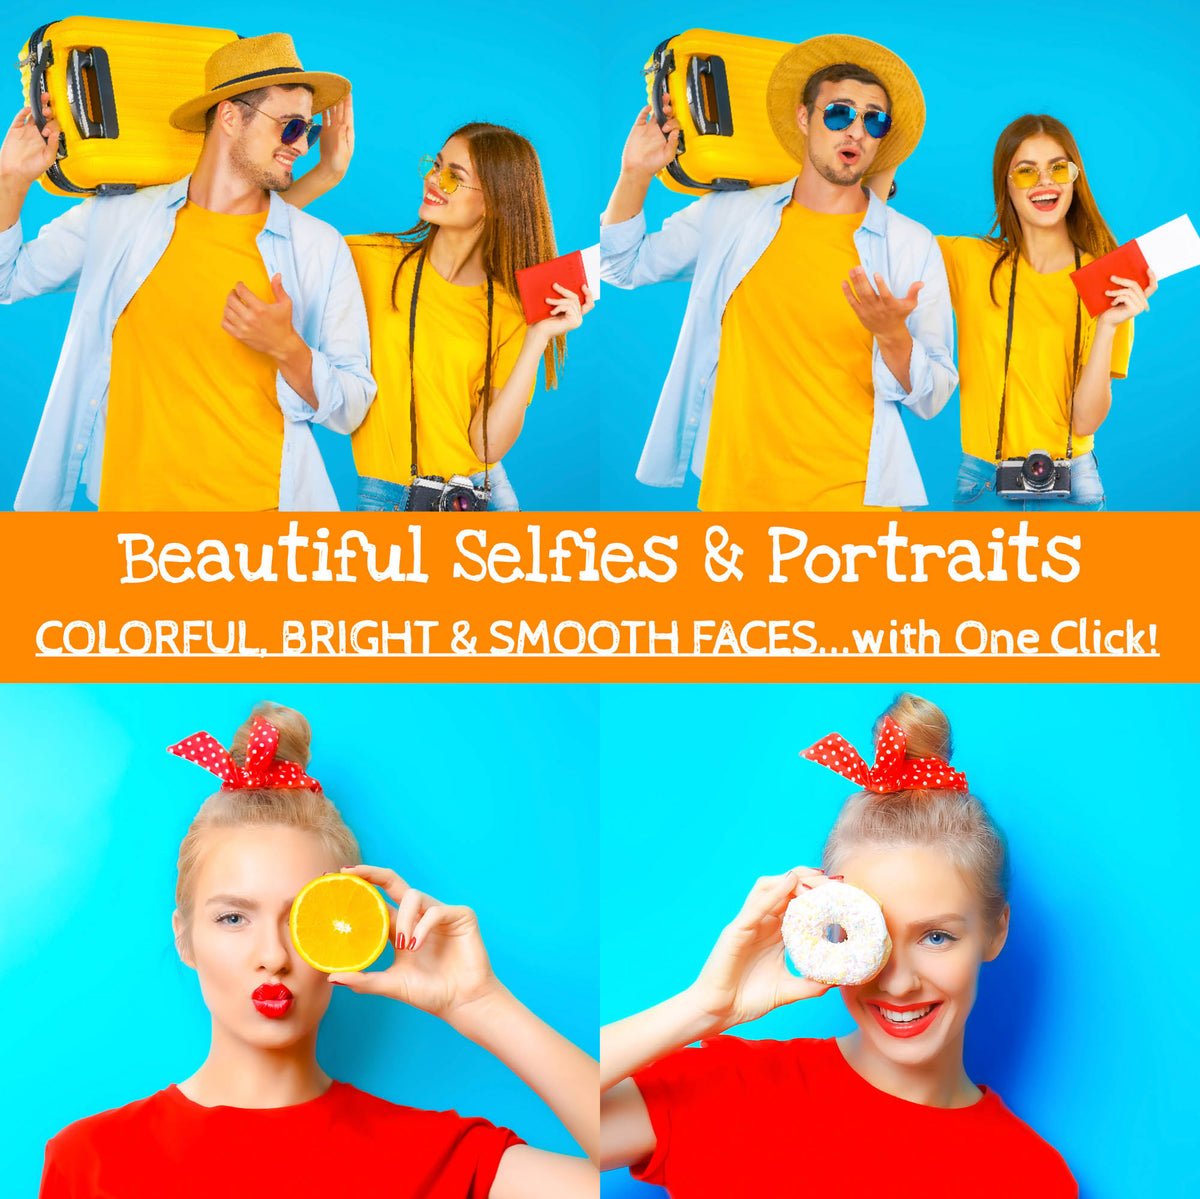 Lightroom Presets for Selfies and Portraits